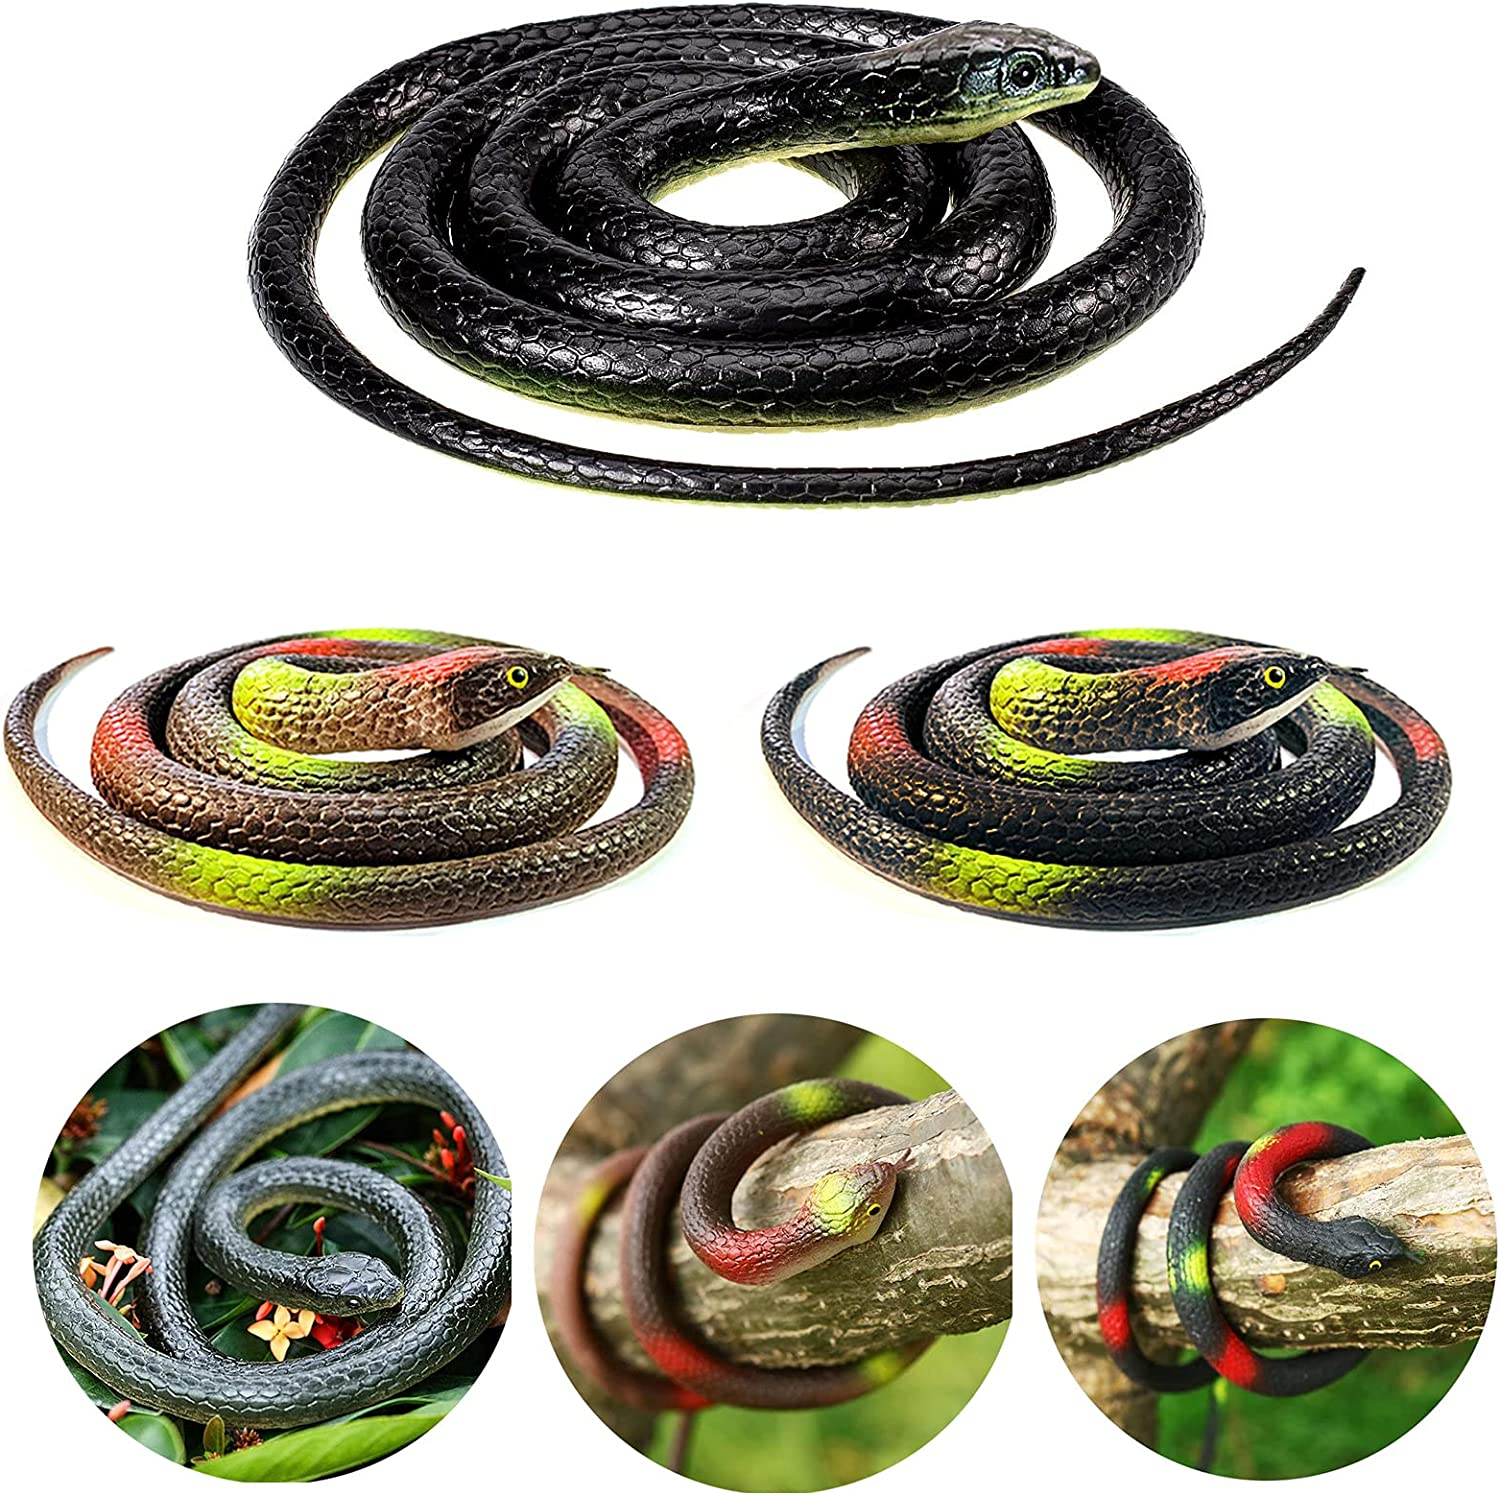 OLJHFG 8 PCS Large Realistic Rubber Fake Snakes Toys That Look Real Black Mamba Snake for Garden Props to Scare Birds Squirrels and Prank Stuff